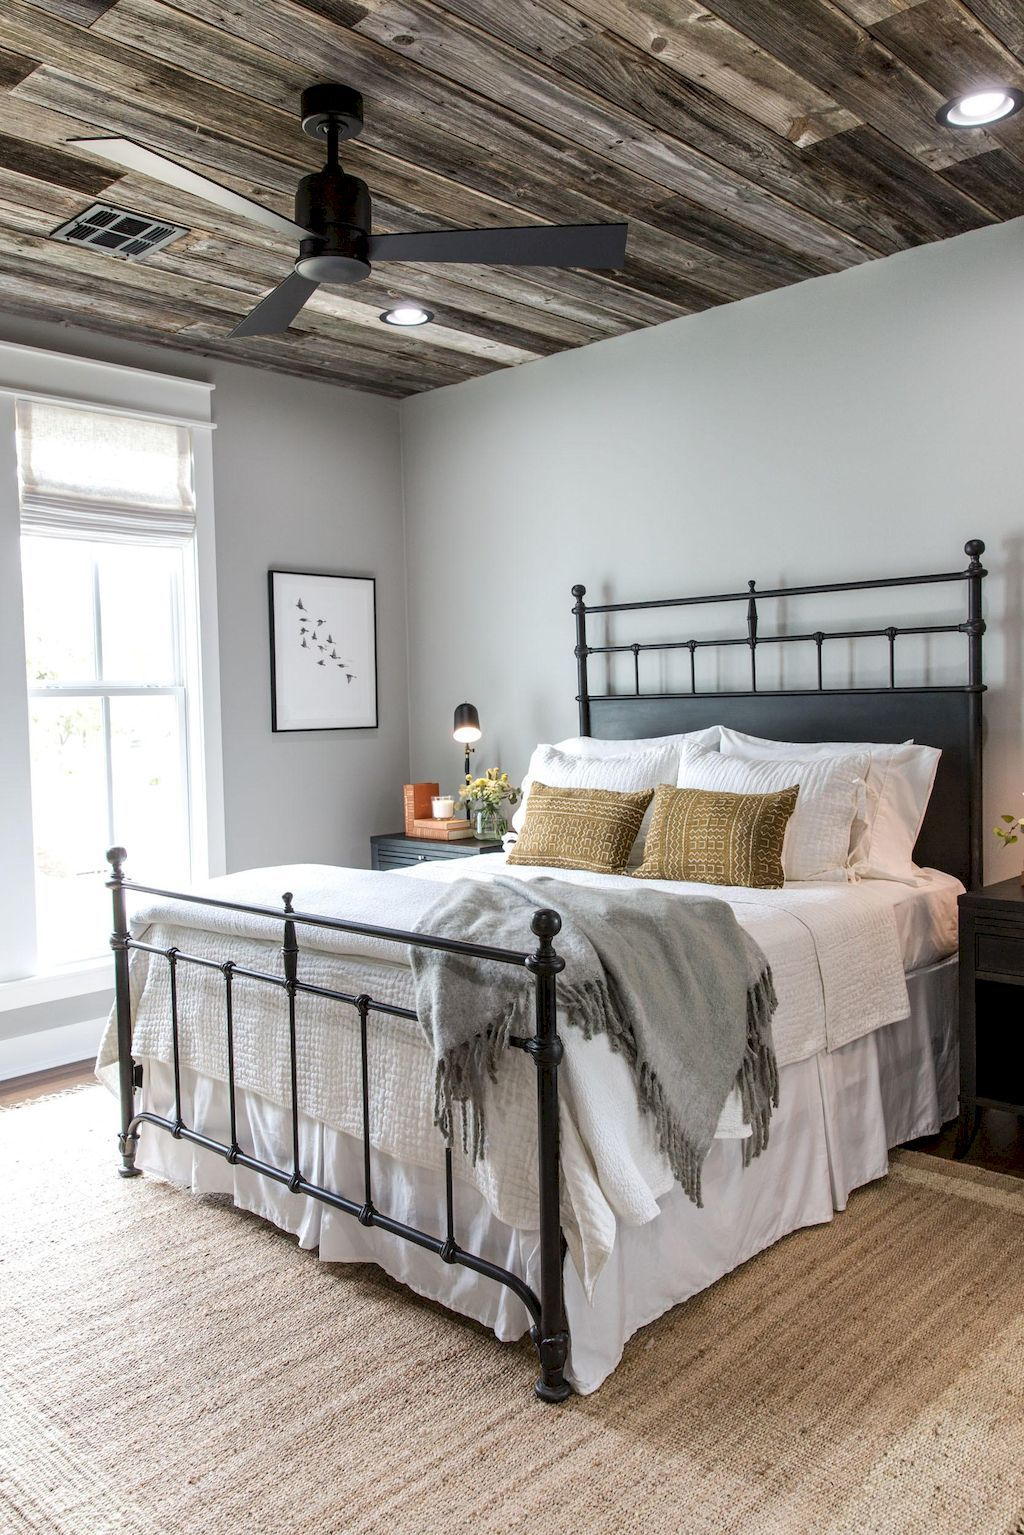 60 Classy Rustic Bedroom Design Ideas